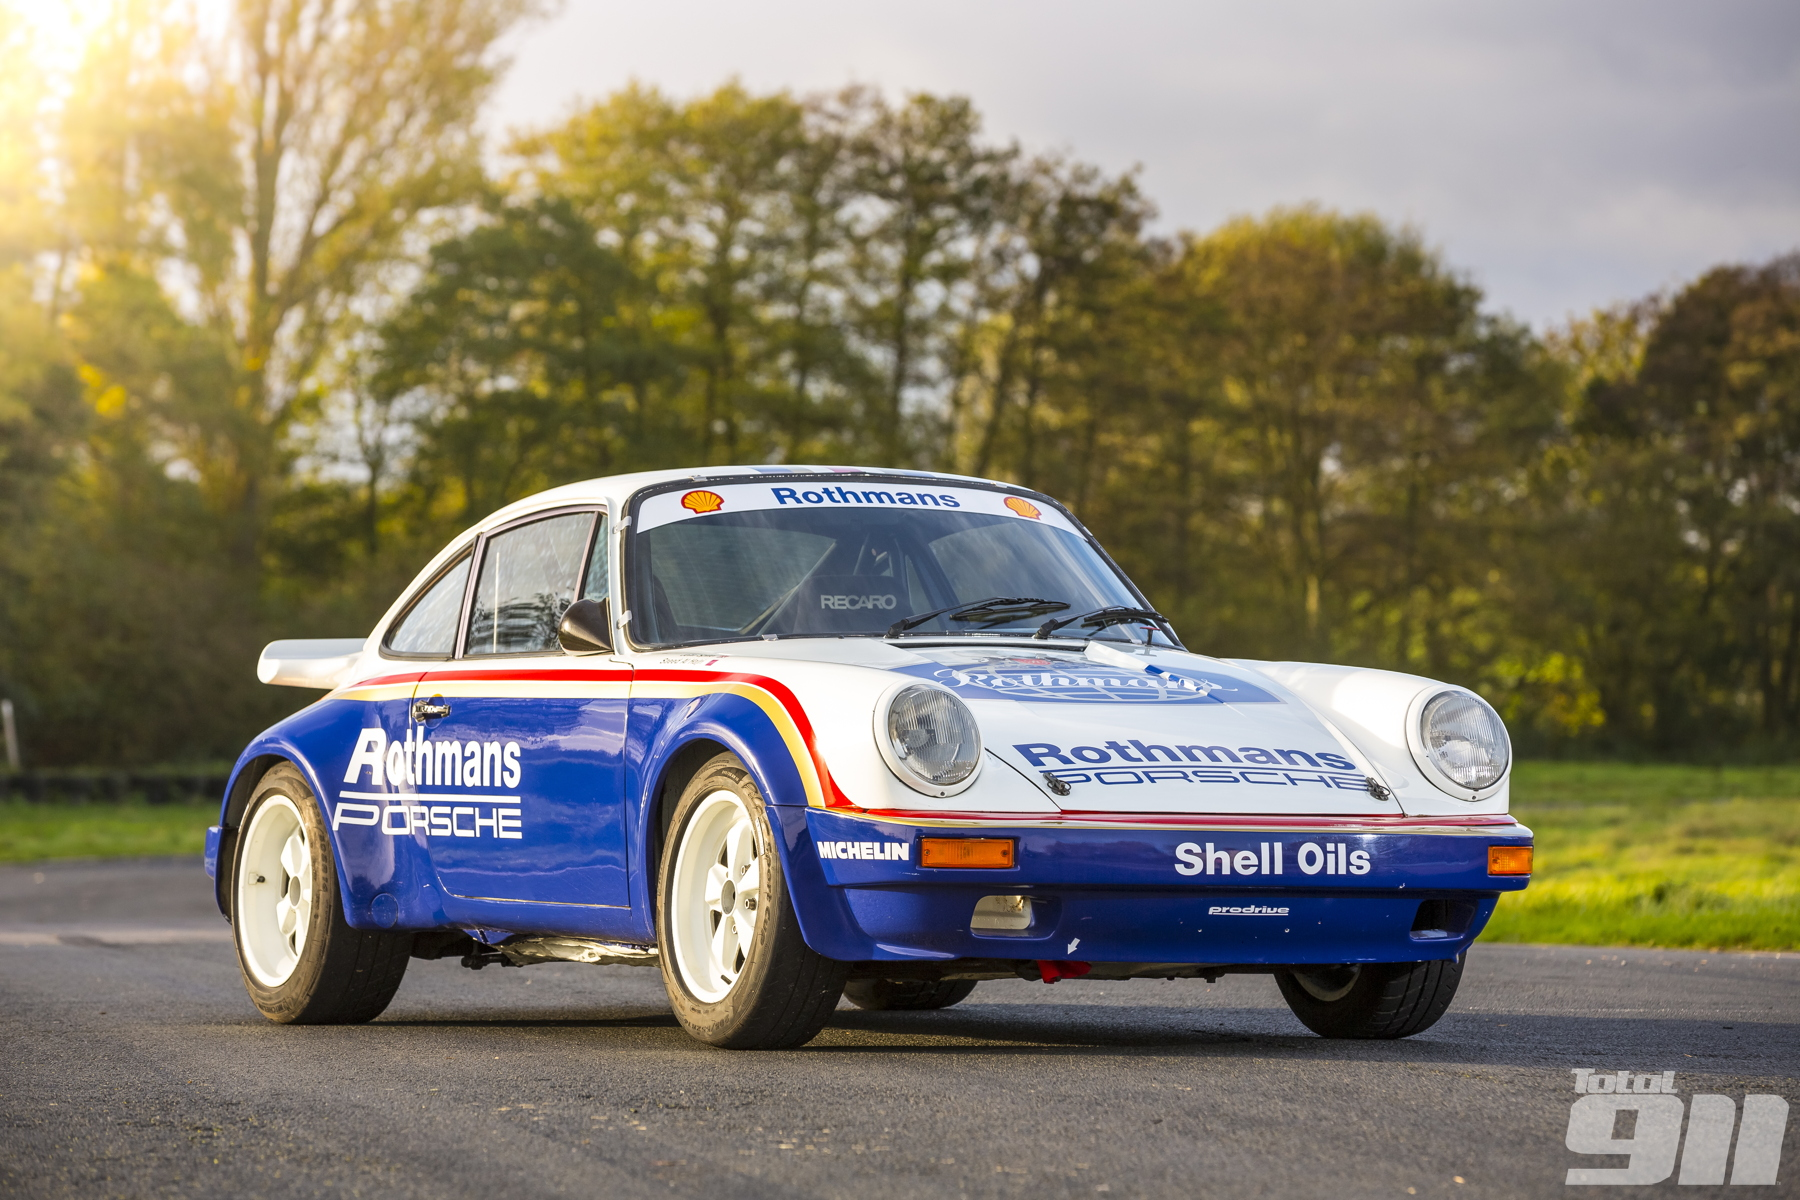 Seven classic Porsche racing liveries that will make you